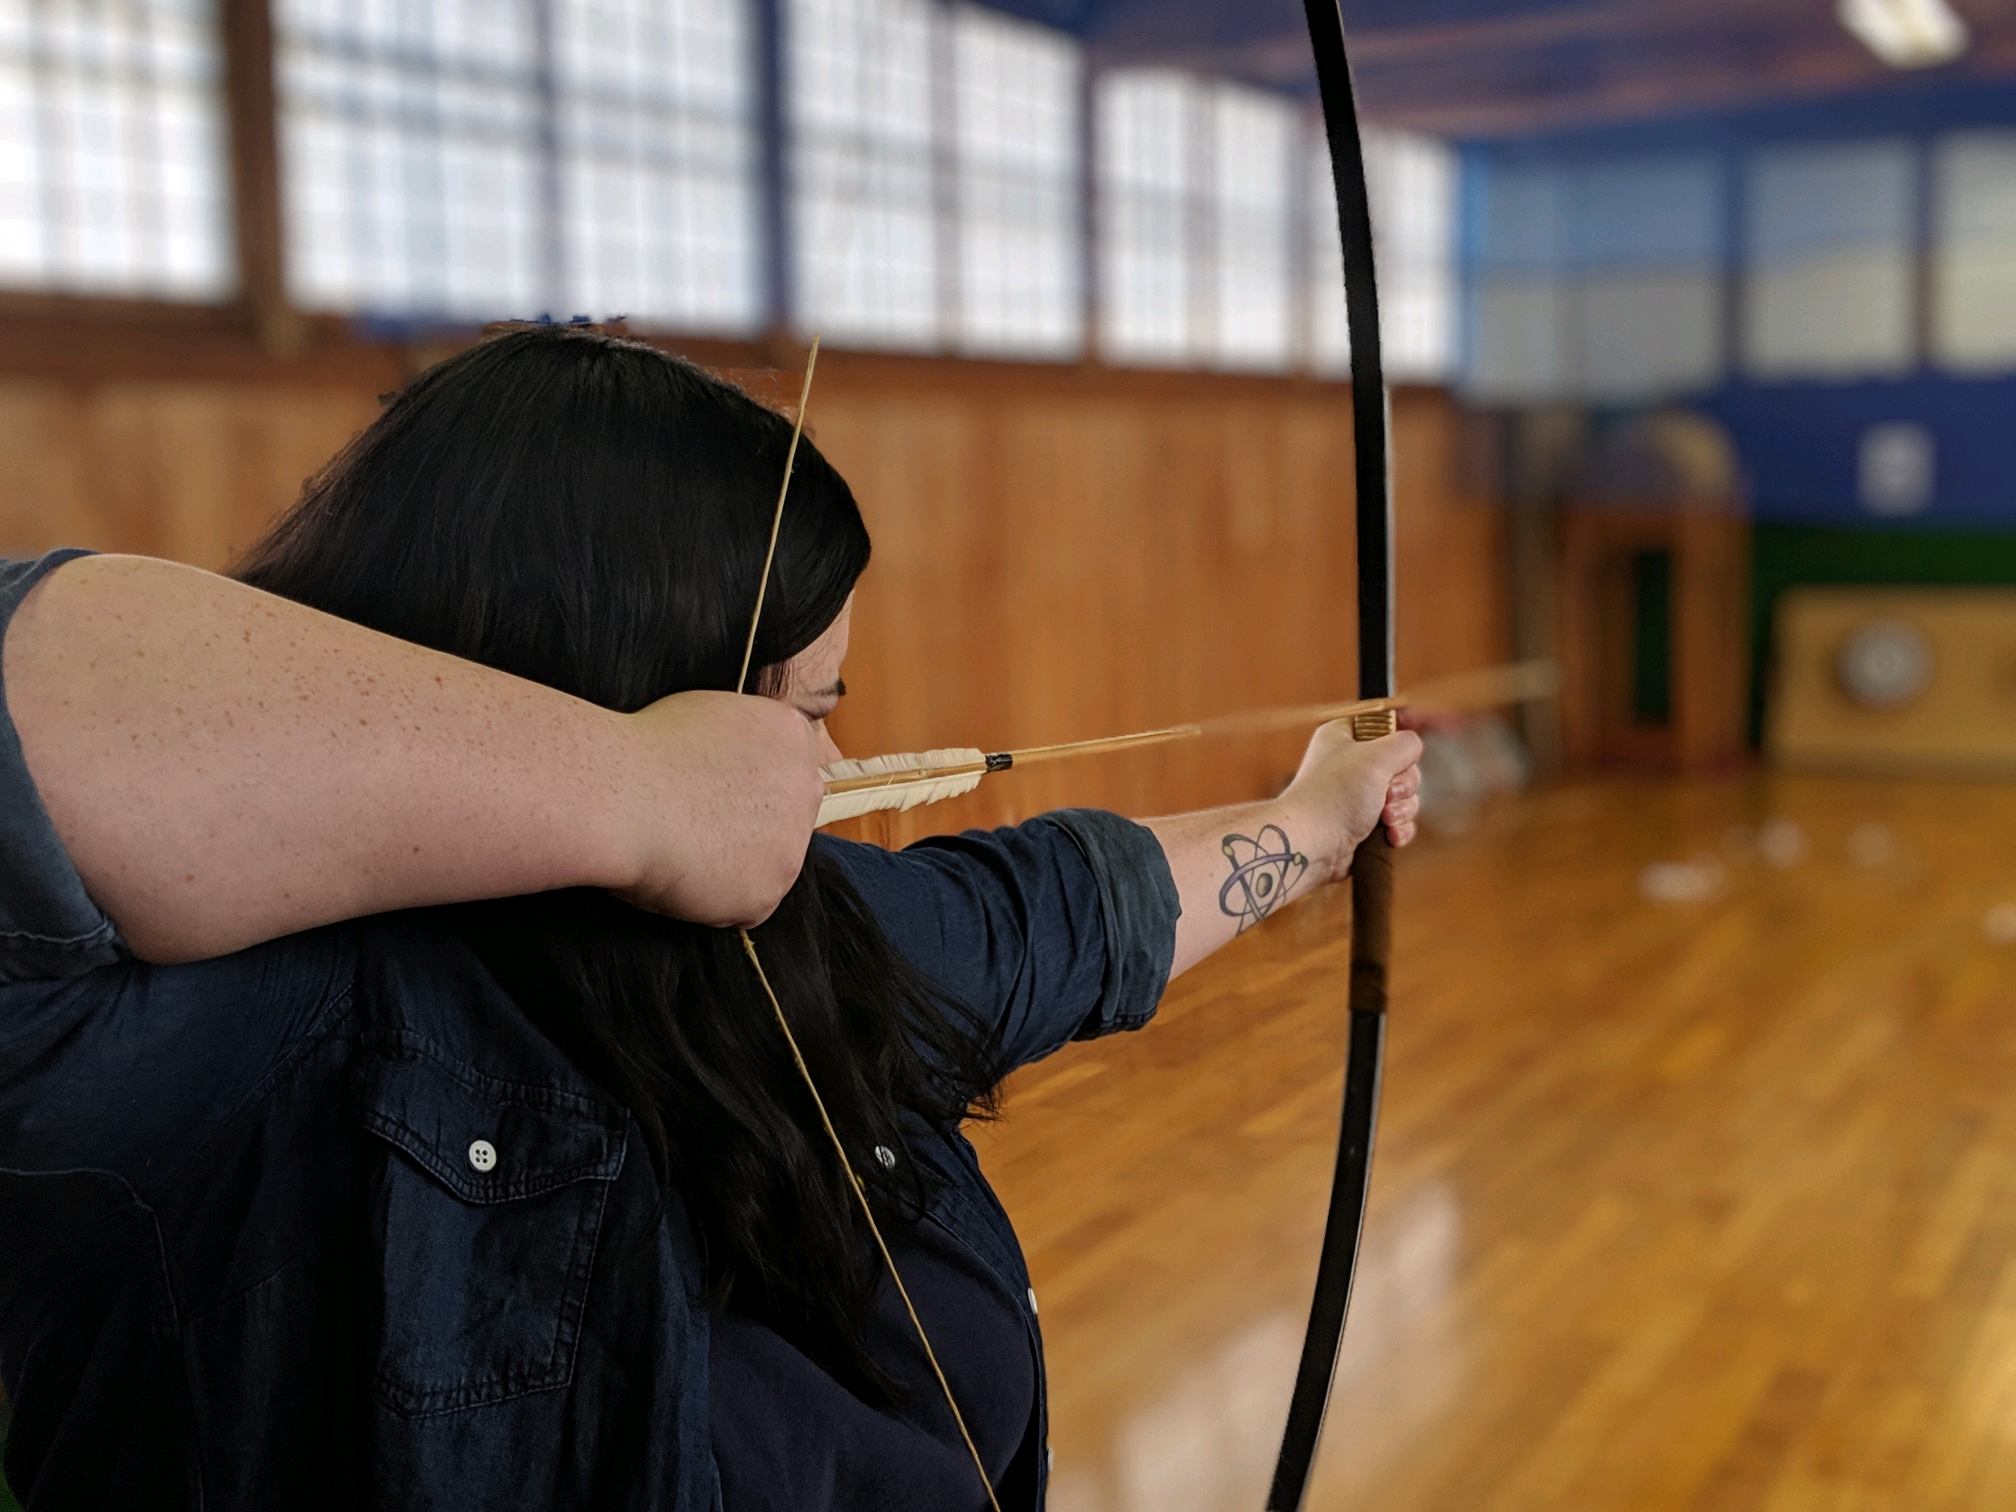 Mackenzie Warwick learns archery at a samurai school in Japan